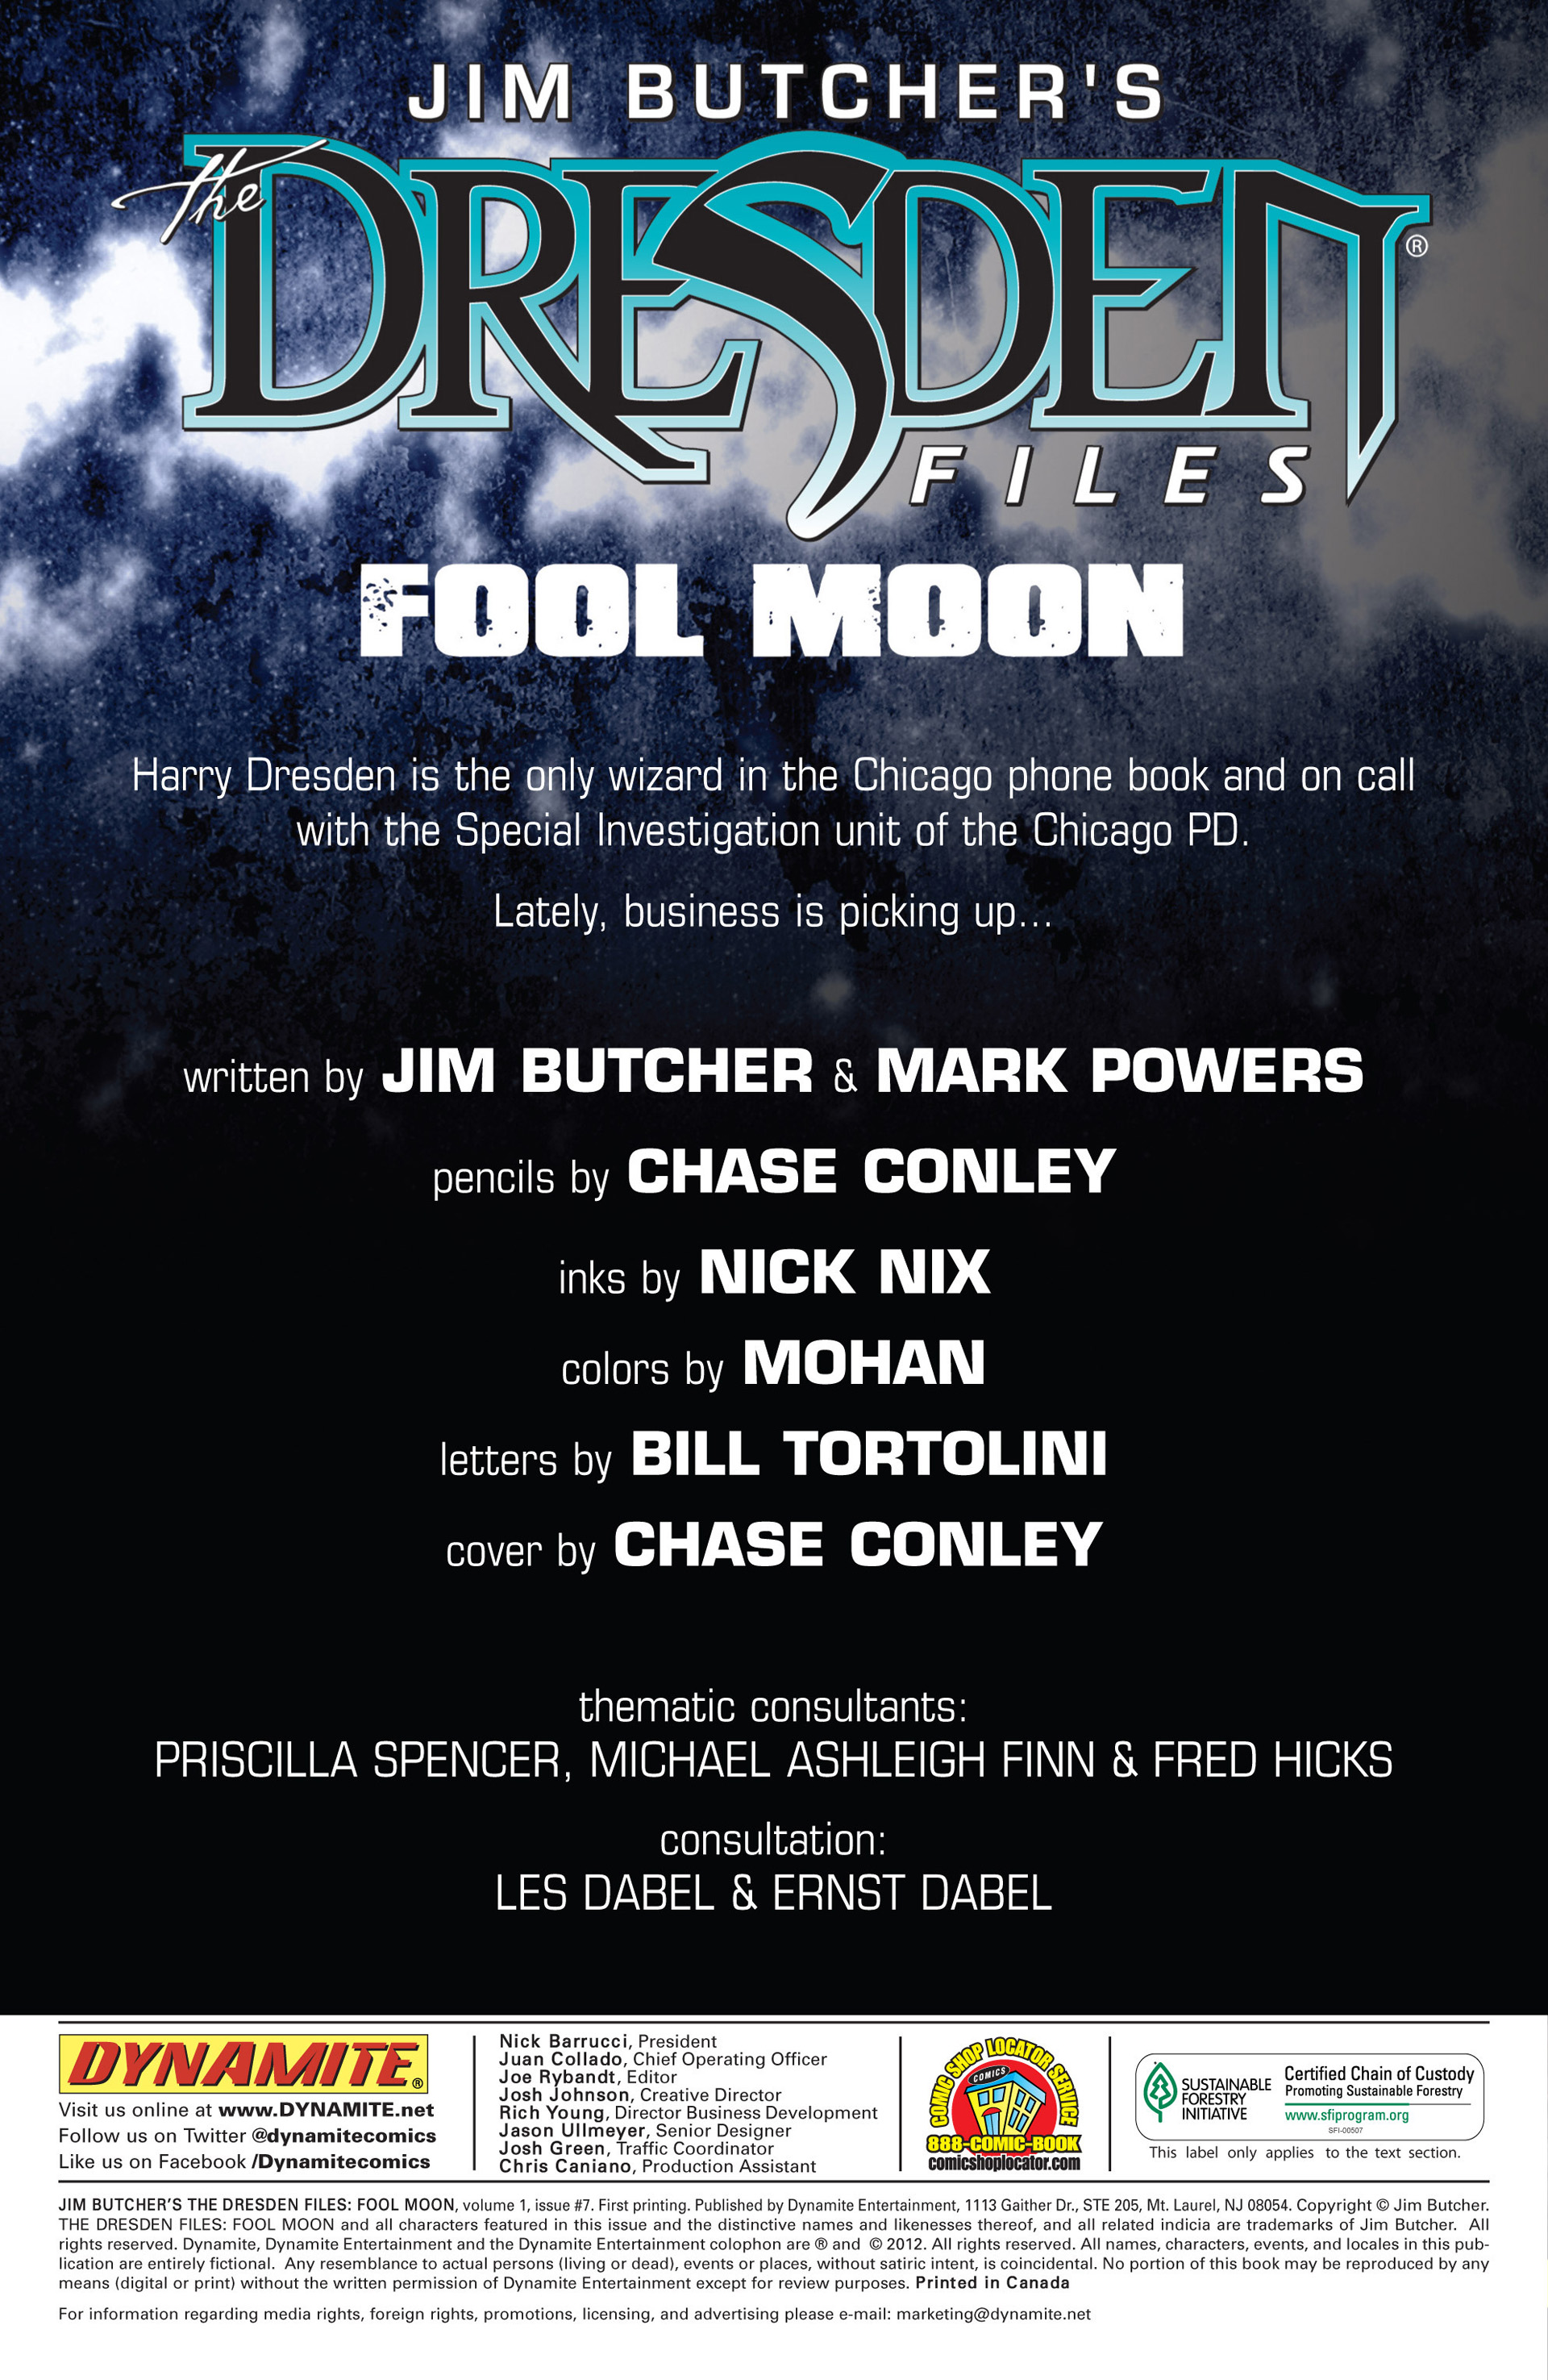 Read online Jim Butcher's The Dresden Files: Fool Moon comic -  Issue #7 - 2